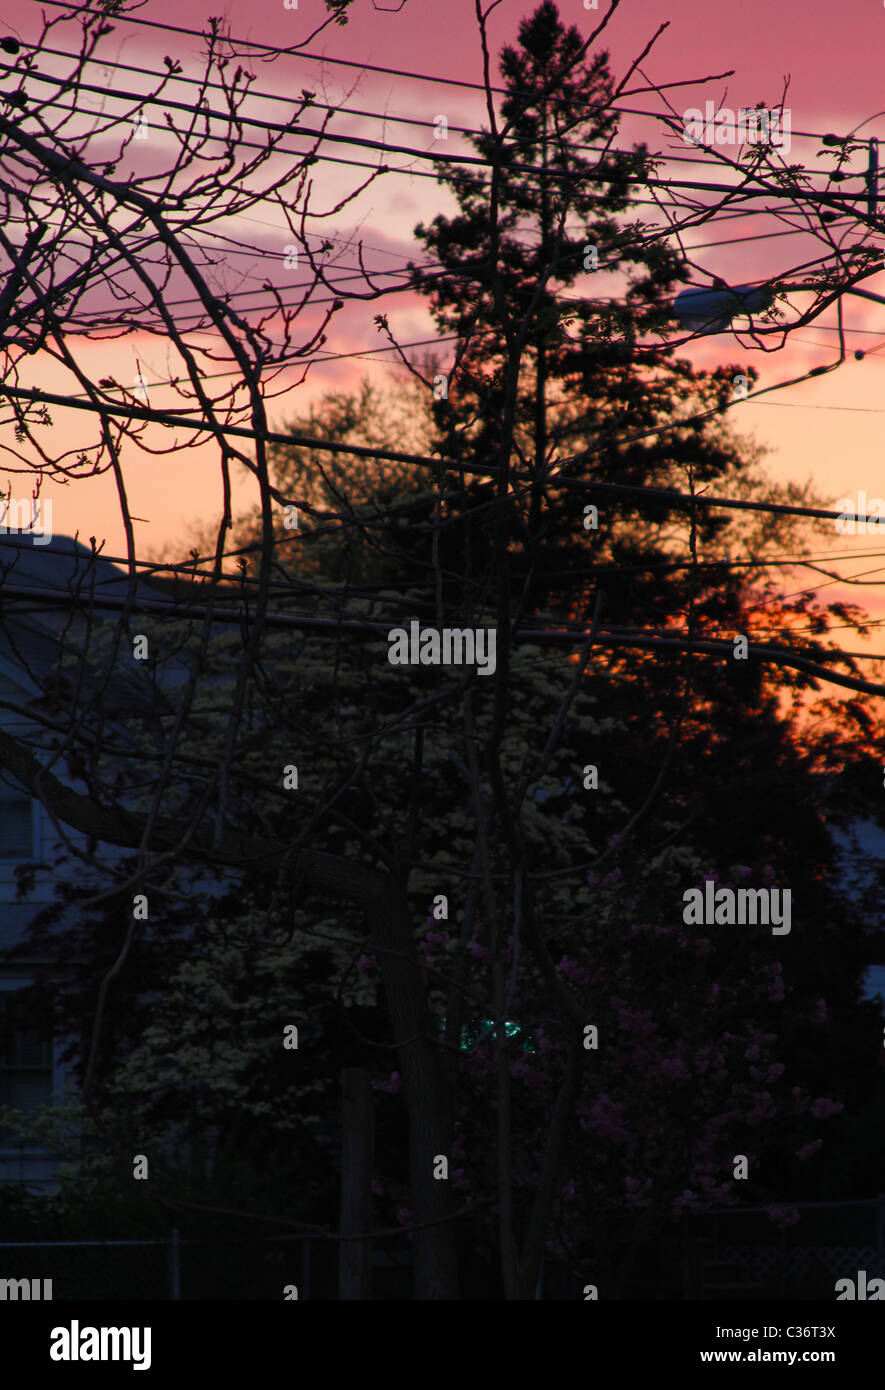 Suburban Spring Sunset - Stock Image